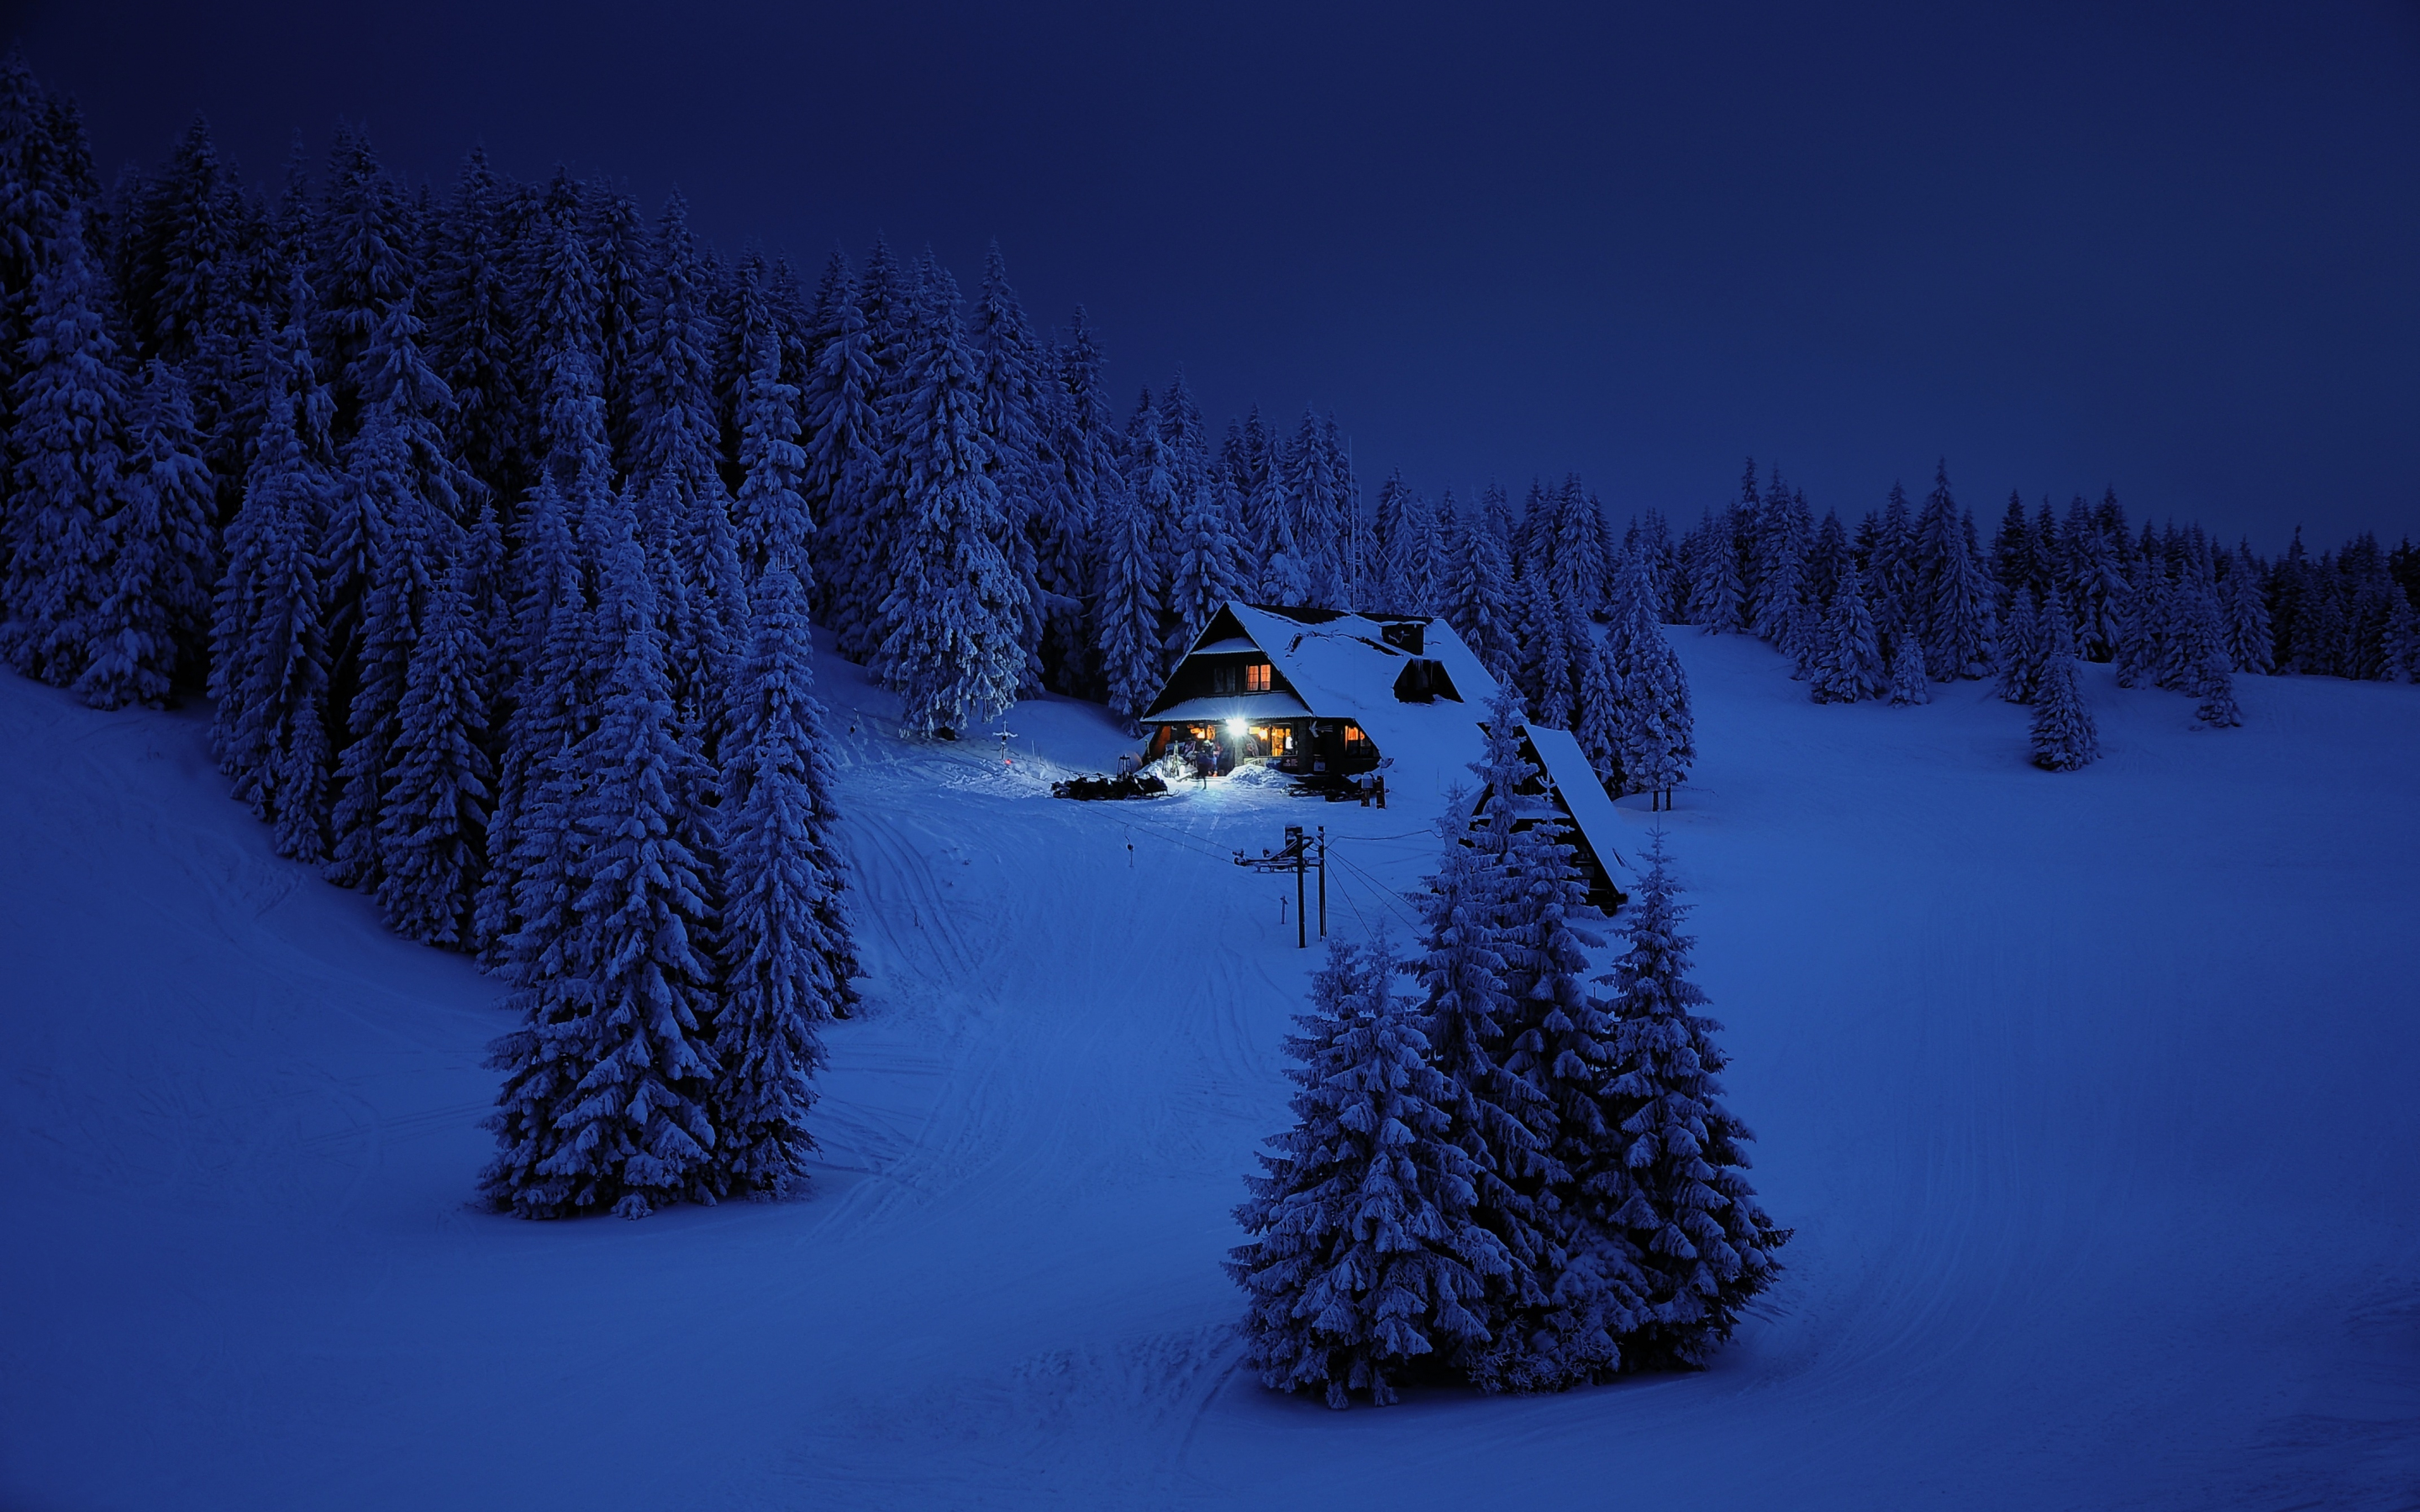 Download 2880x1800 Wallpaper House Night Winter Trees Snow Layer Nature Mac Pro Retaia Image Background 7241